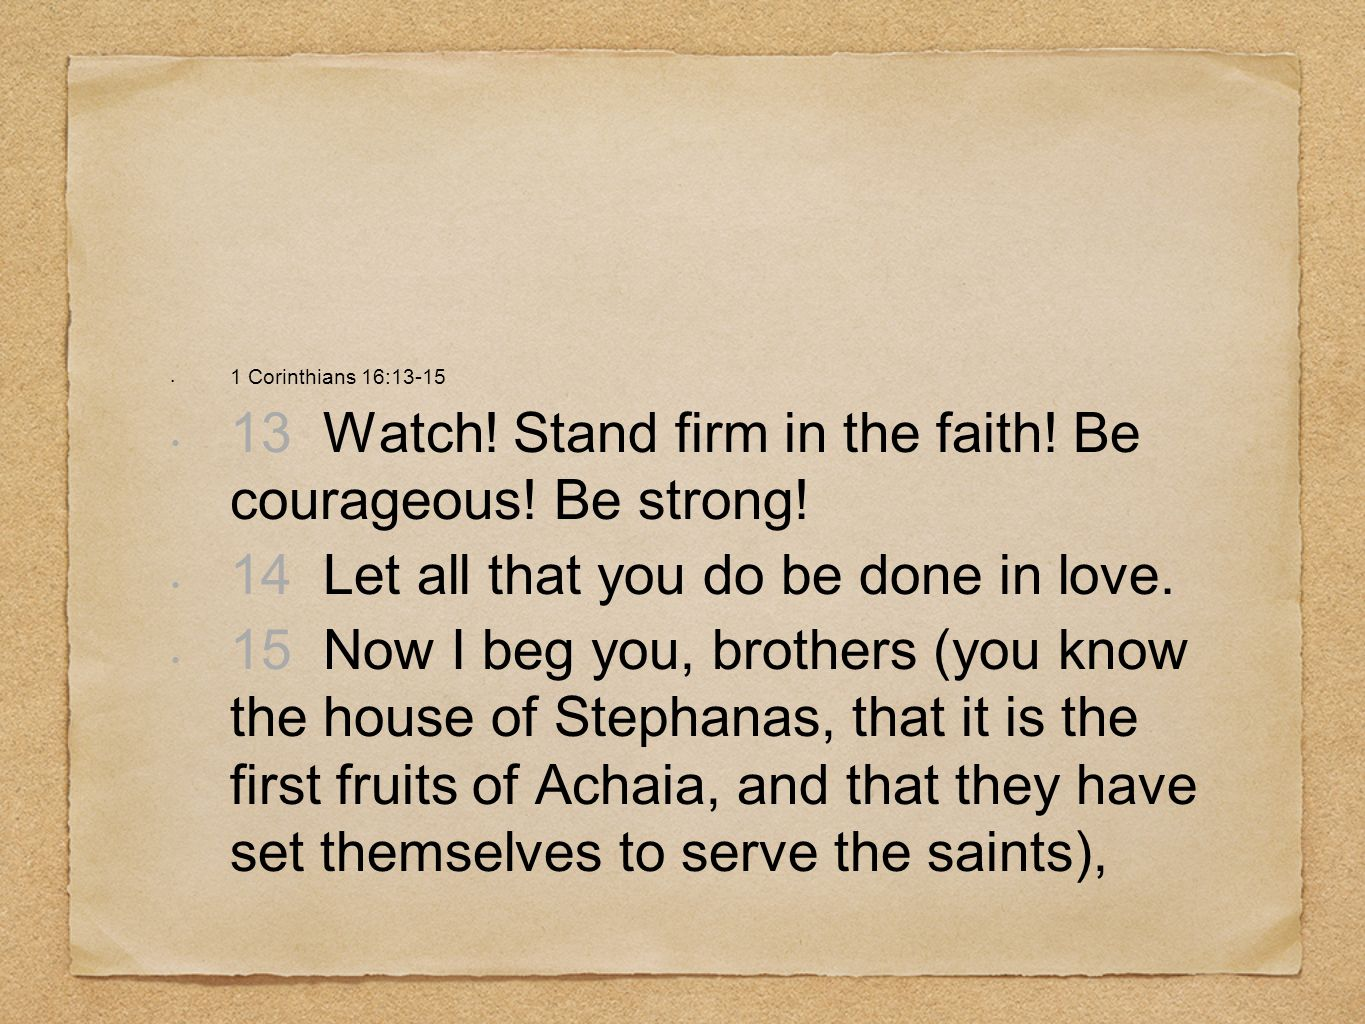 13 Watch! Stand firm in the faith! Be courageous! Be strong!